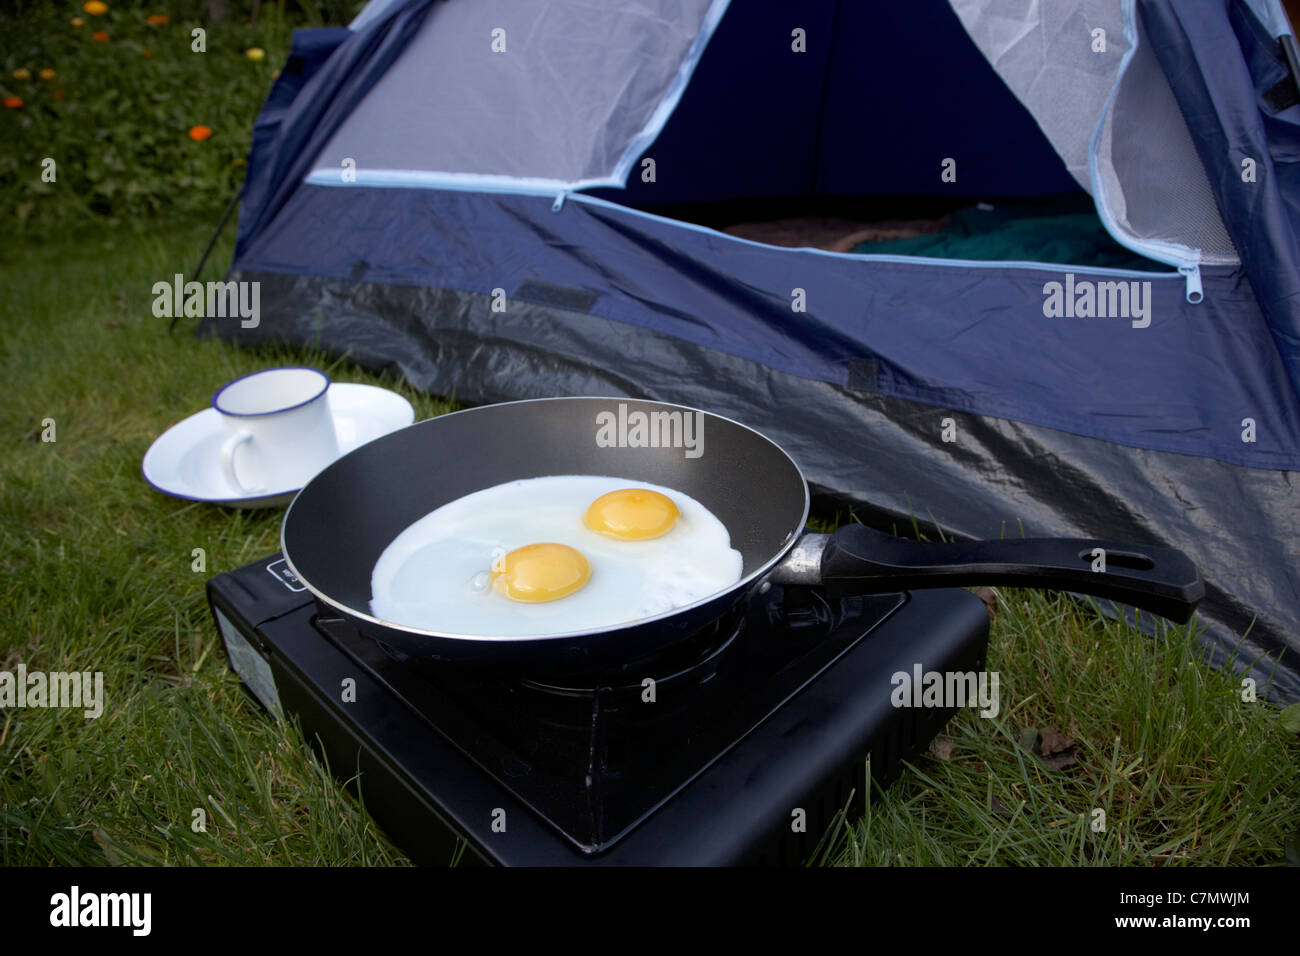 Fantastic Cooking Two Fried Eggs On A Small Portable Gas Camping Stove Interior Design Ideas Clesiryabchikinfo